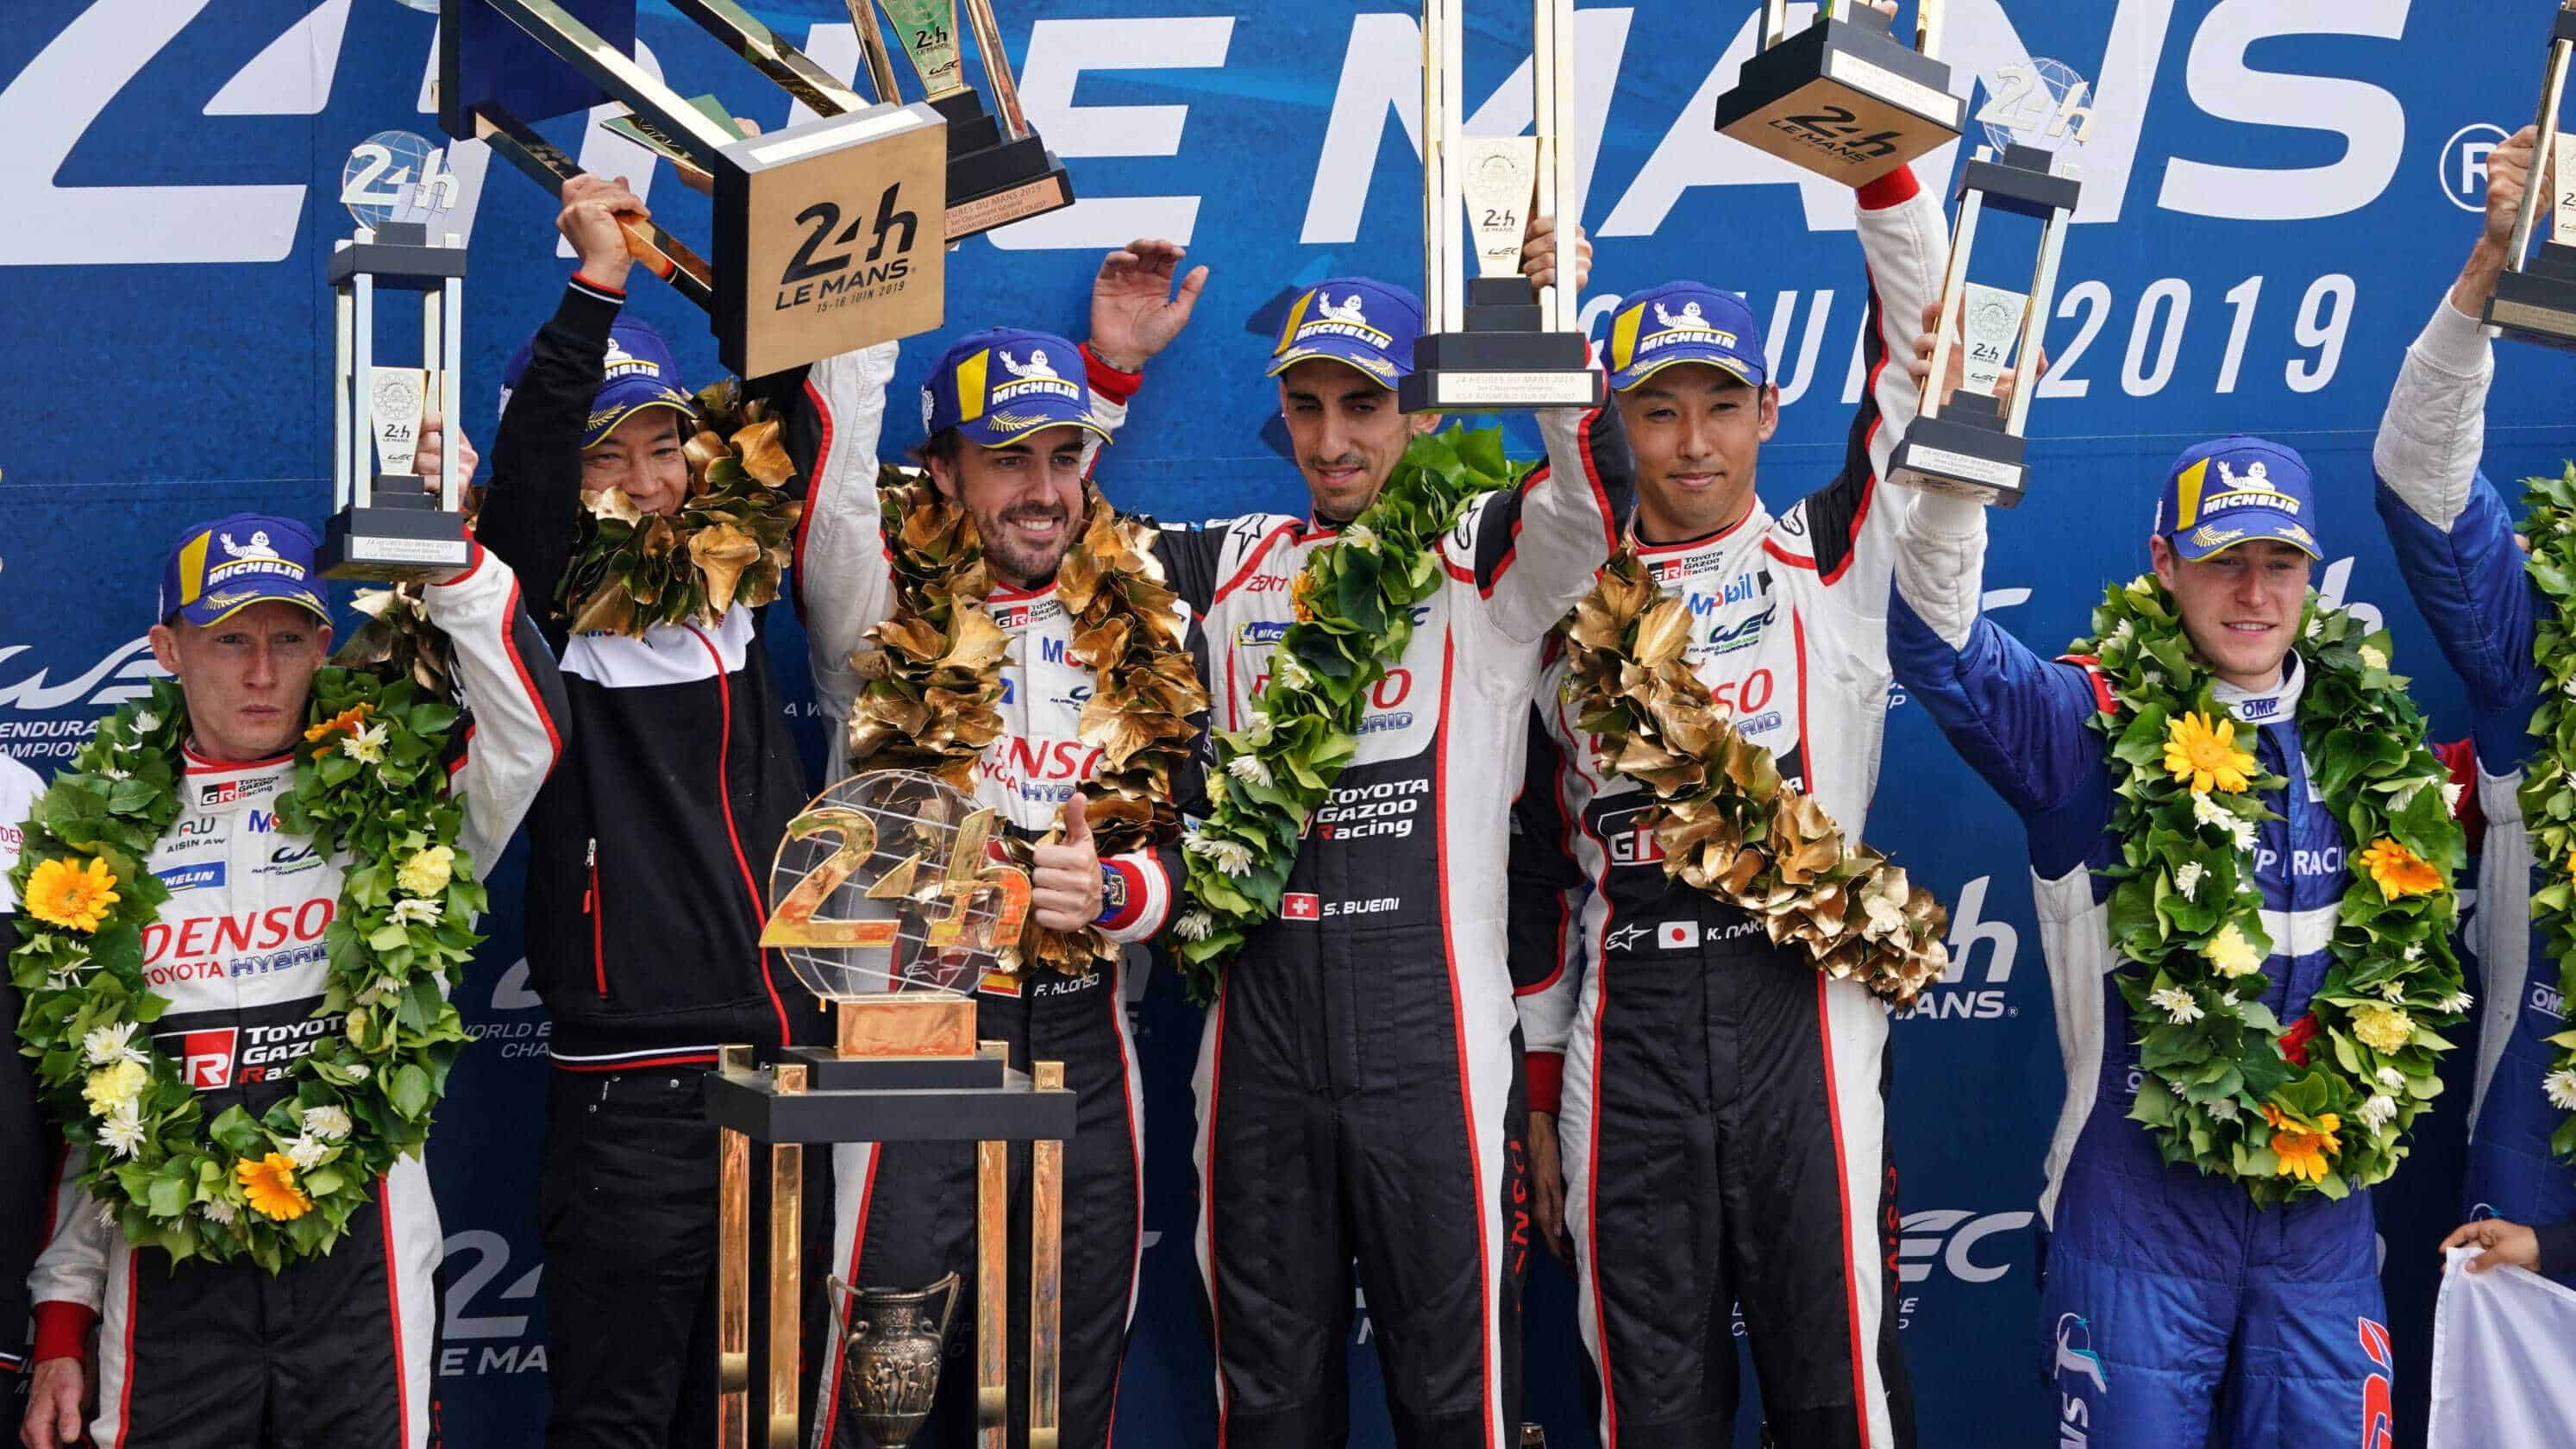 Alonso Nakajima Buemi Toyota LeMans 24h 2019 celebrating victory on the podium Photo Eurosport